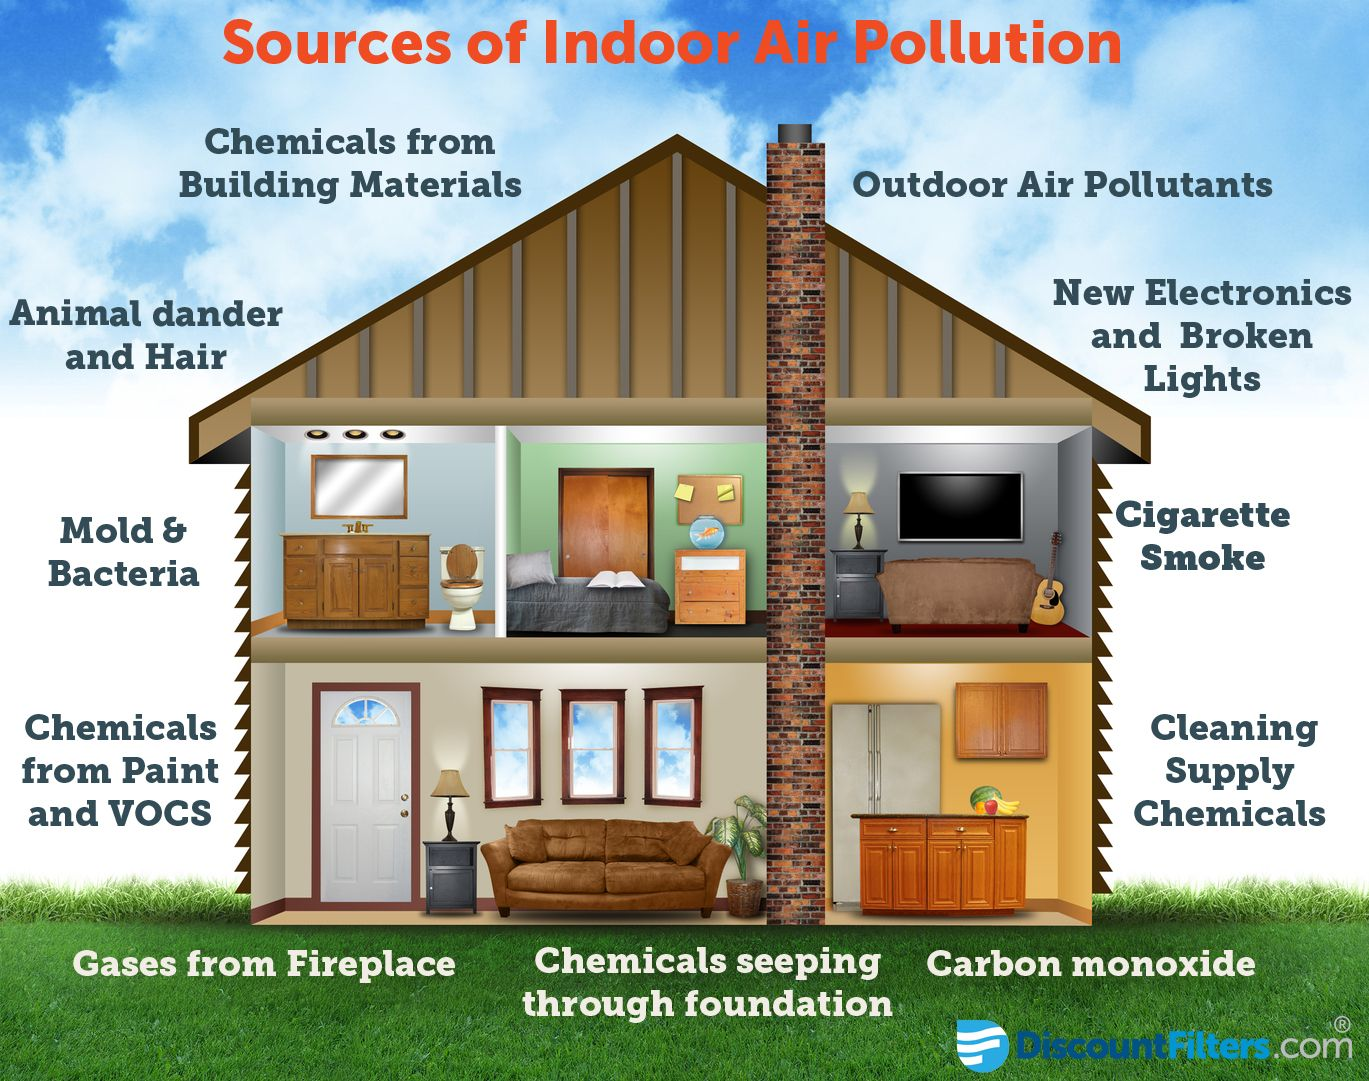 How Bad Is Indoor Air Pollution for Your Health? Air